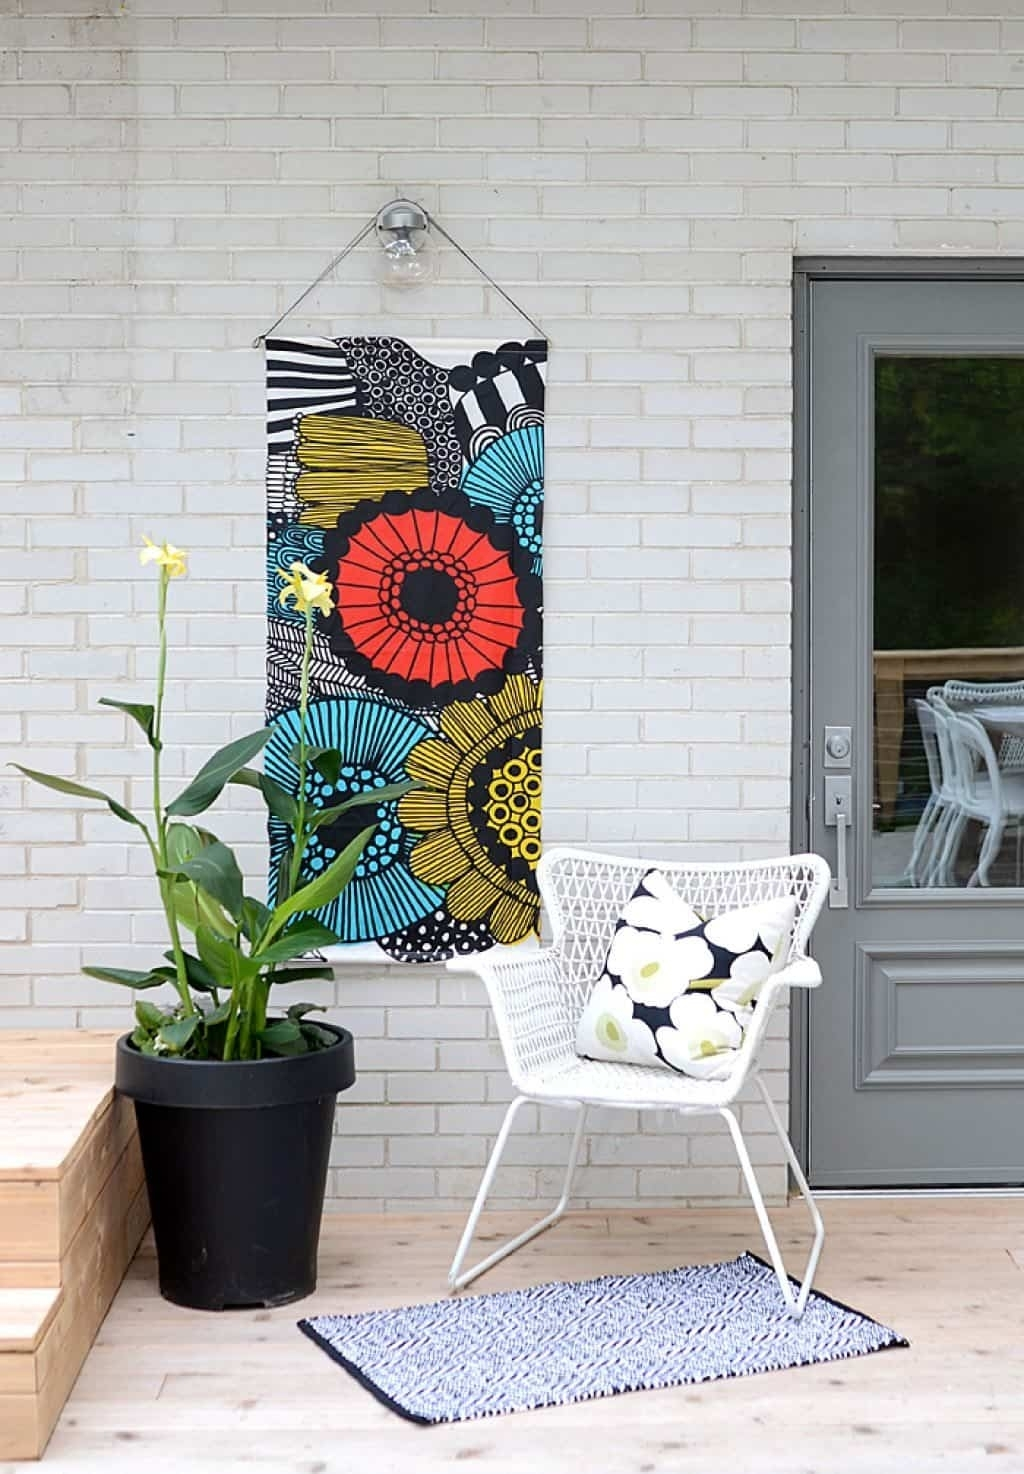 Hanging Fabric Abstract Wall Art – Decorative Outdoor Wall Art For In 2017 Outdoor Fabric Wall Art (View 15 of 15)